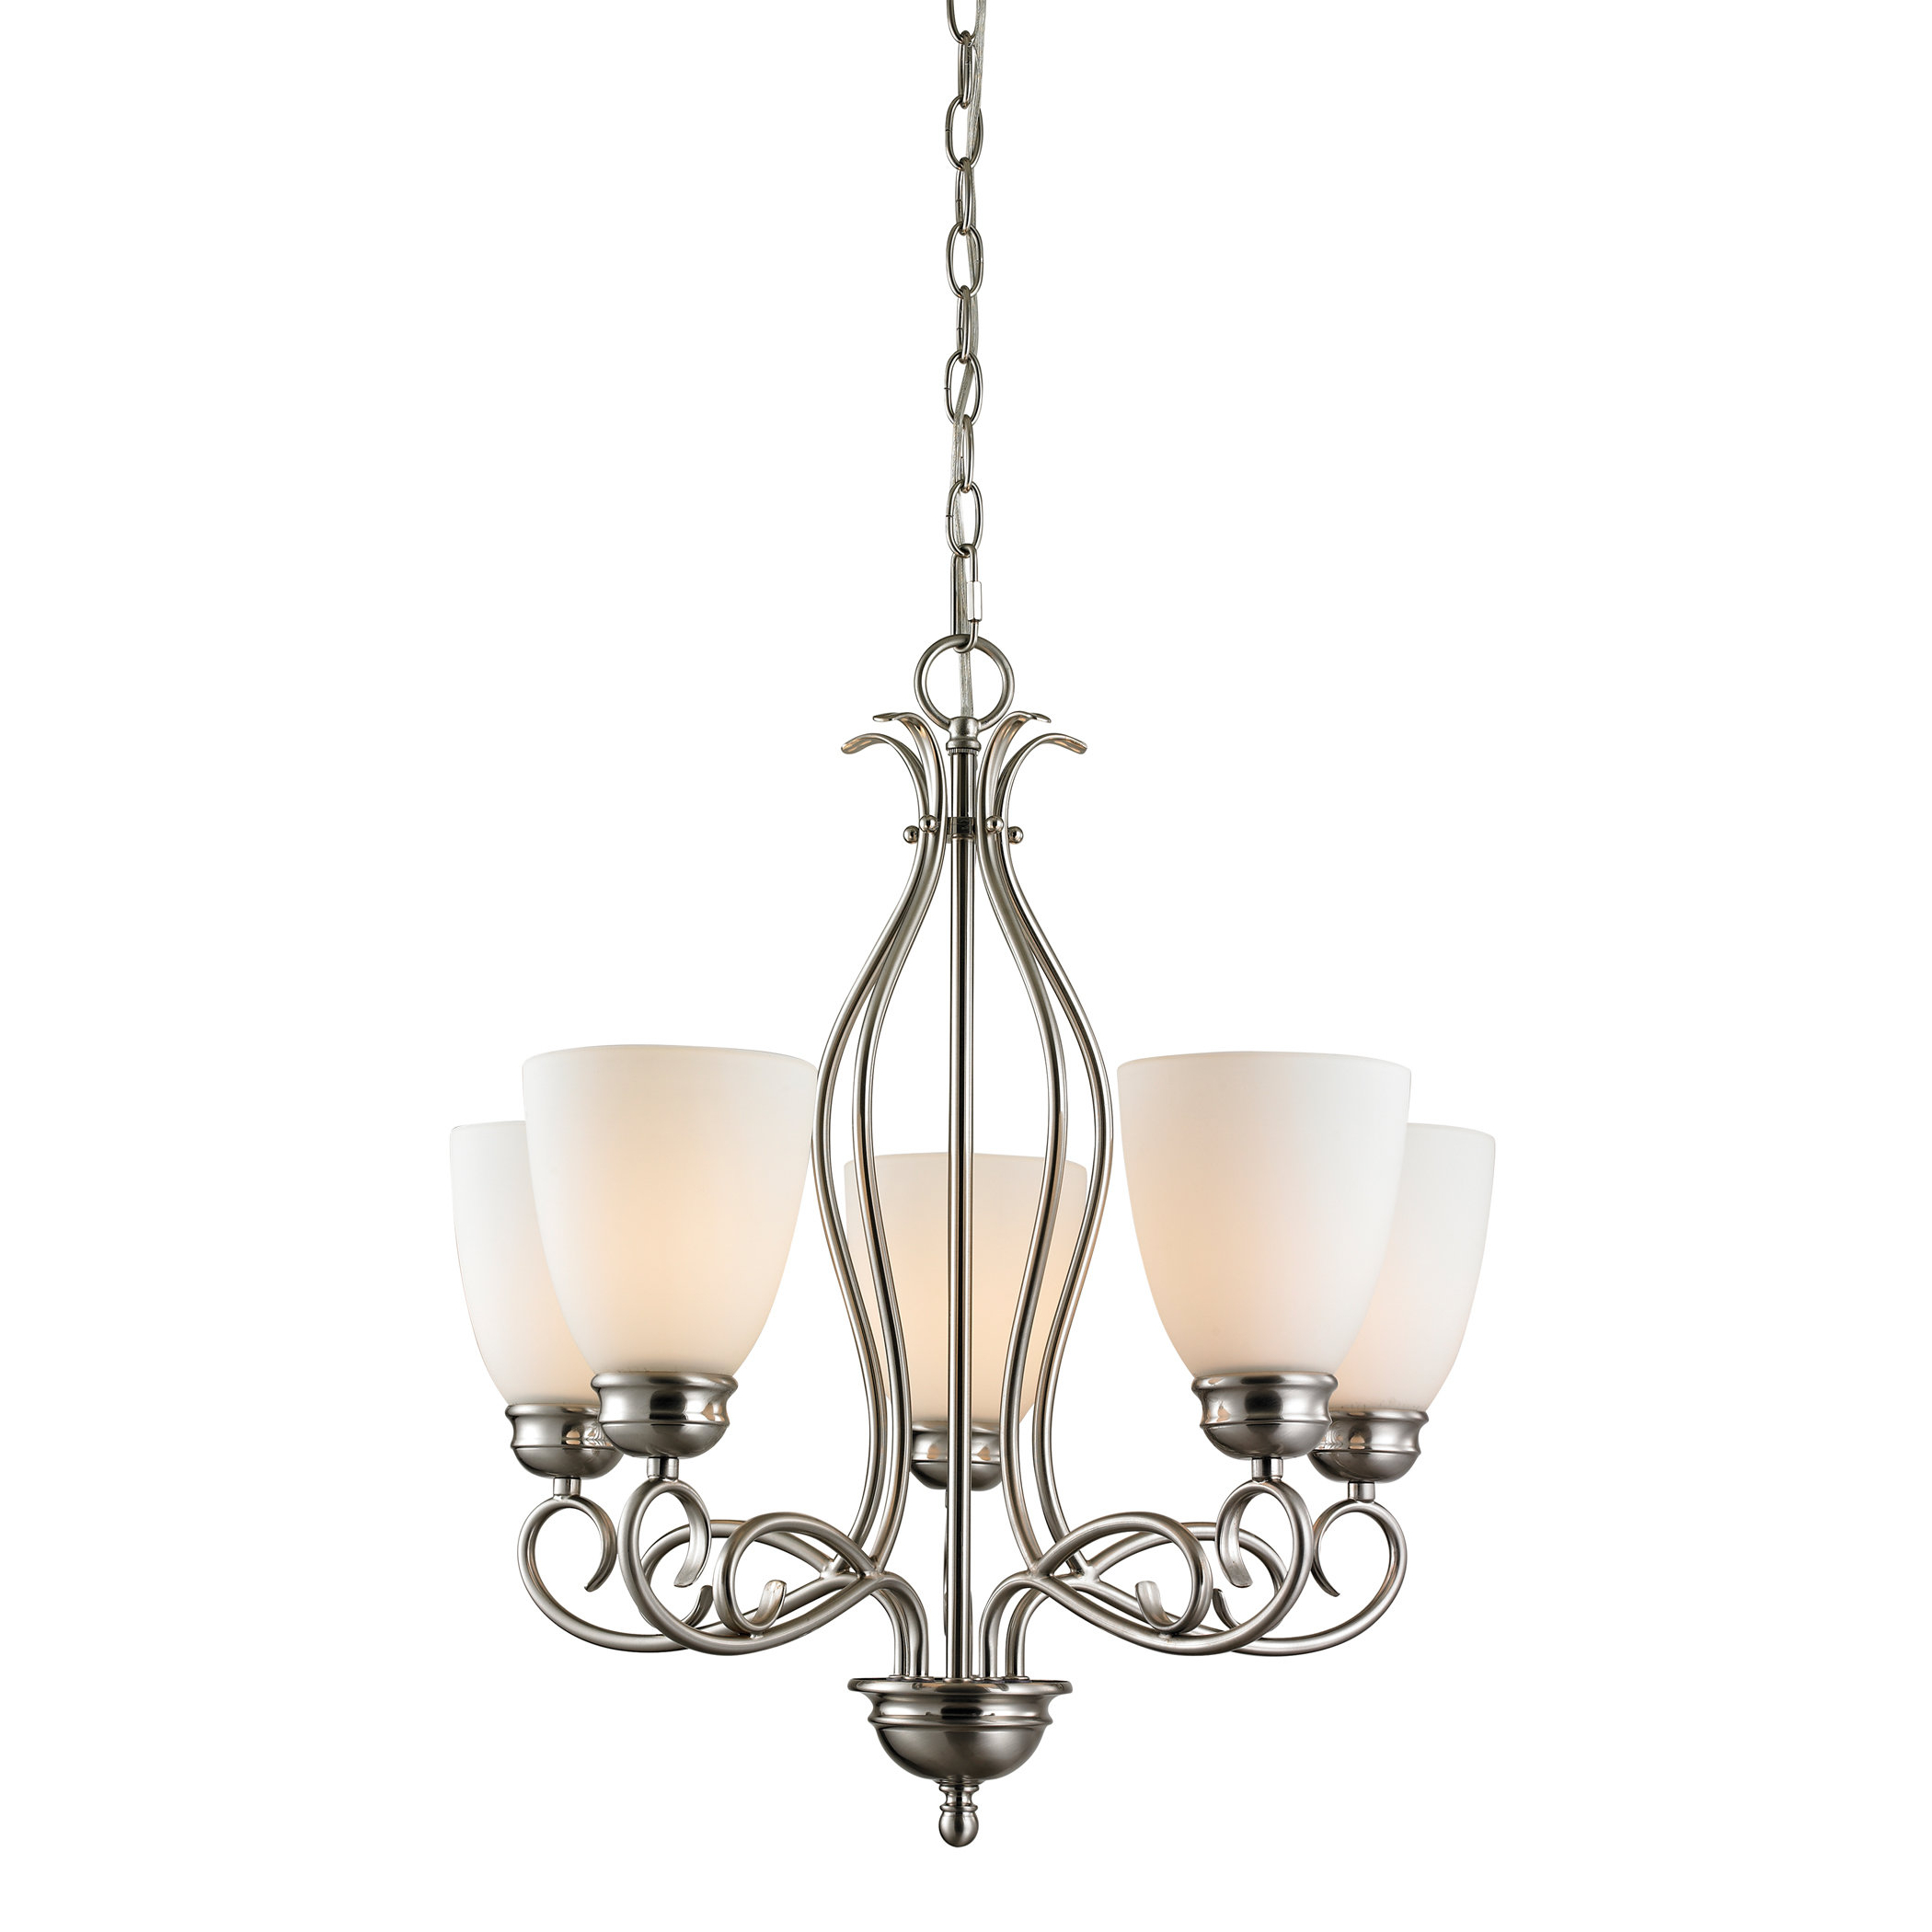 Best And Newest Pearlie 5 Light Shaded Chandelier Inside Gaines 5 Light Shaded Chandeliers (View 5 of 20)